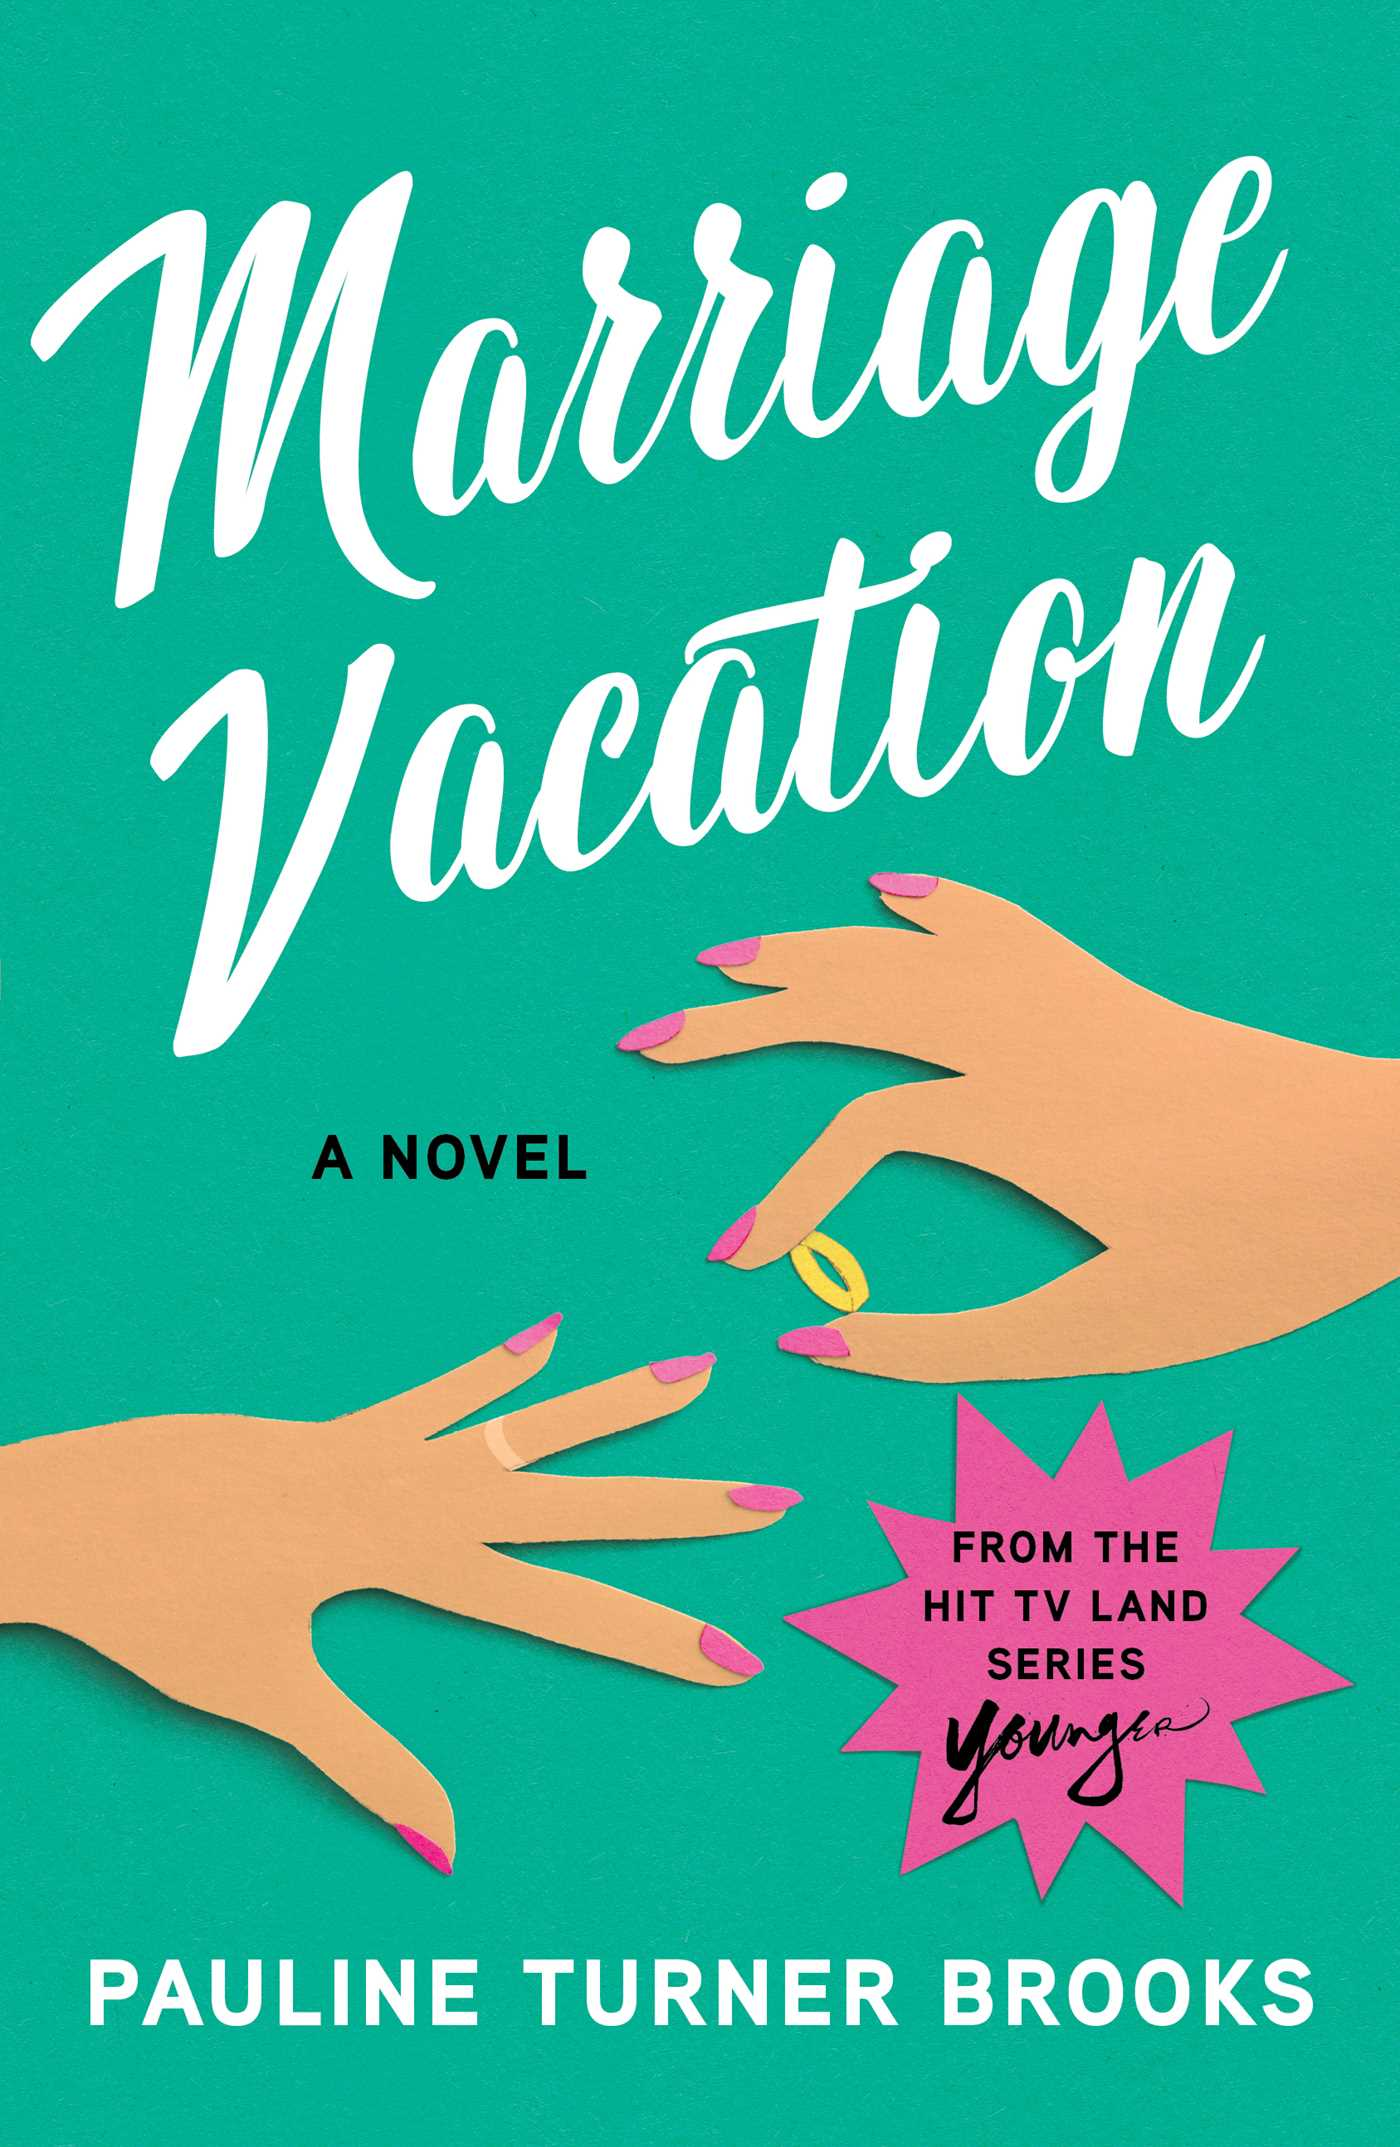 Marriage Vacation - A Novel - From the hit TV Land series Younger - Pauline Turner Brooks